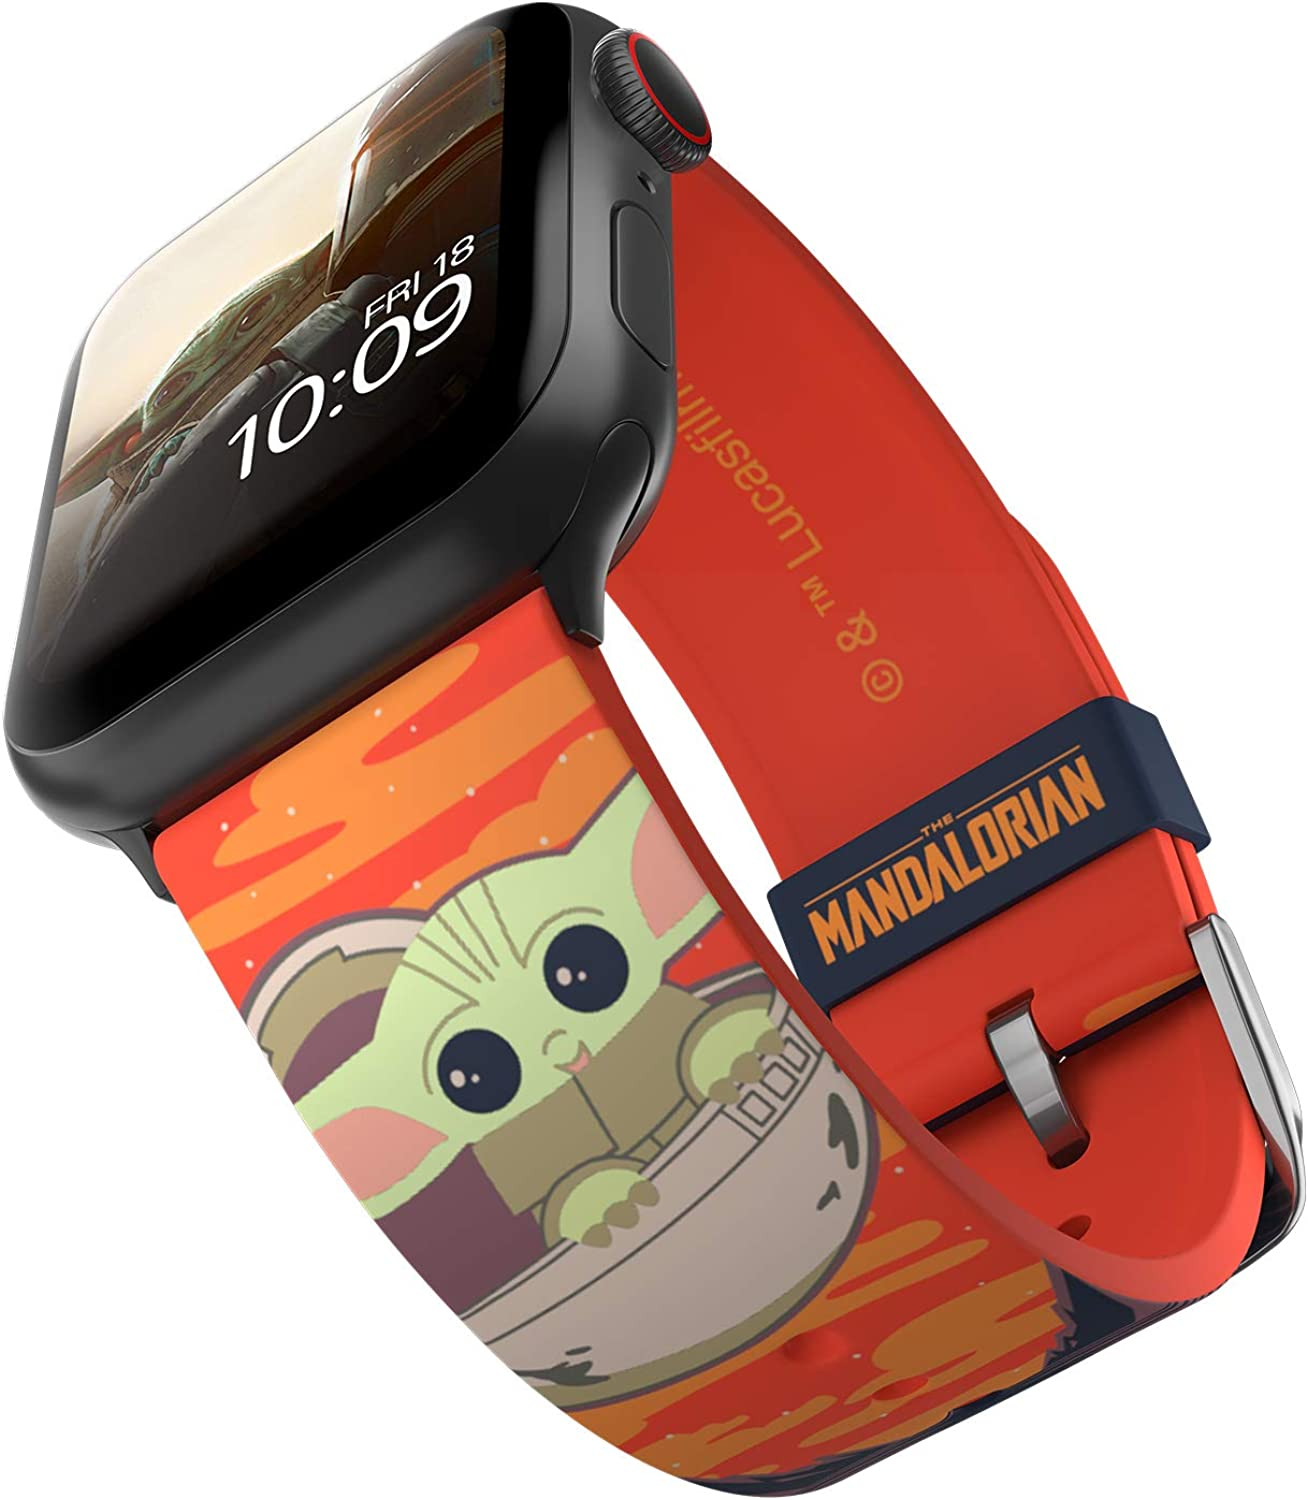 Star Wars: The Mandalorian - The Child Bounty Smartwatch Band - Officially Licensed, Compatible with Apple Watch (not included) - Fits 38mm, 40mm, 42mm and 44mm